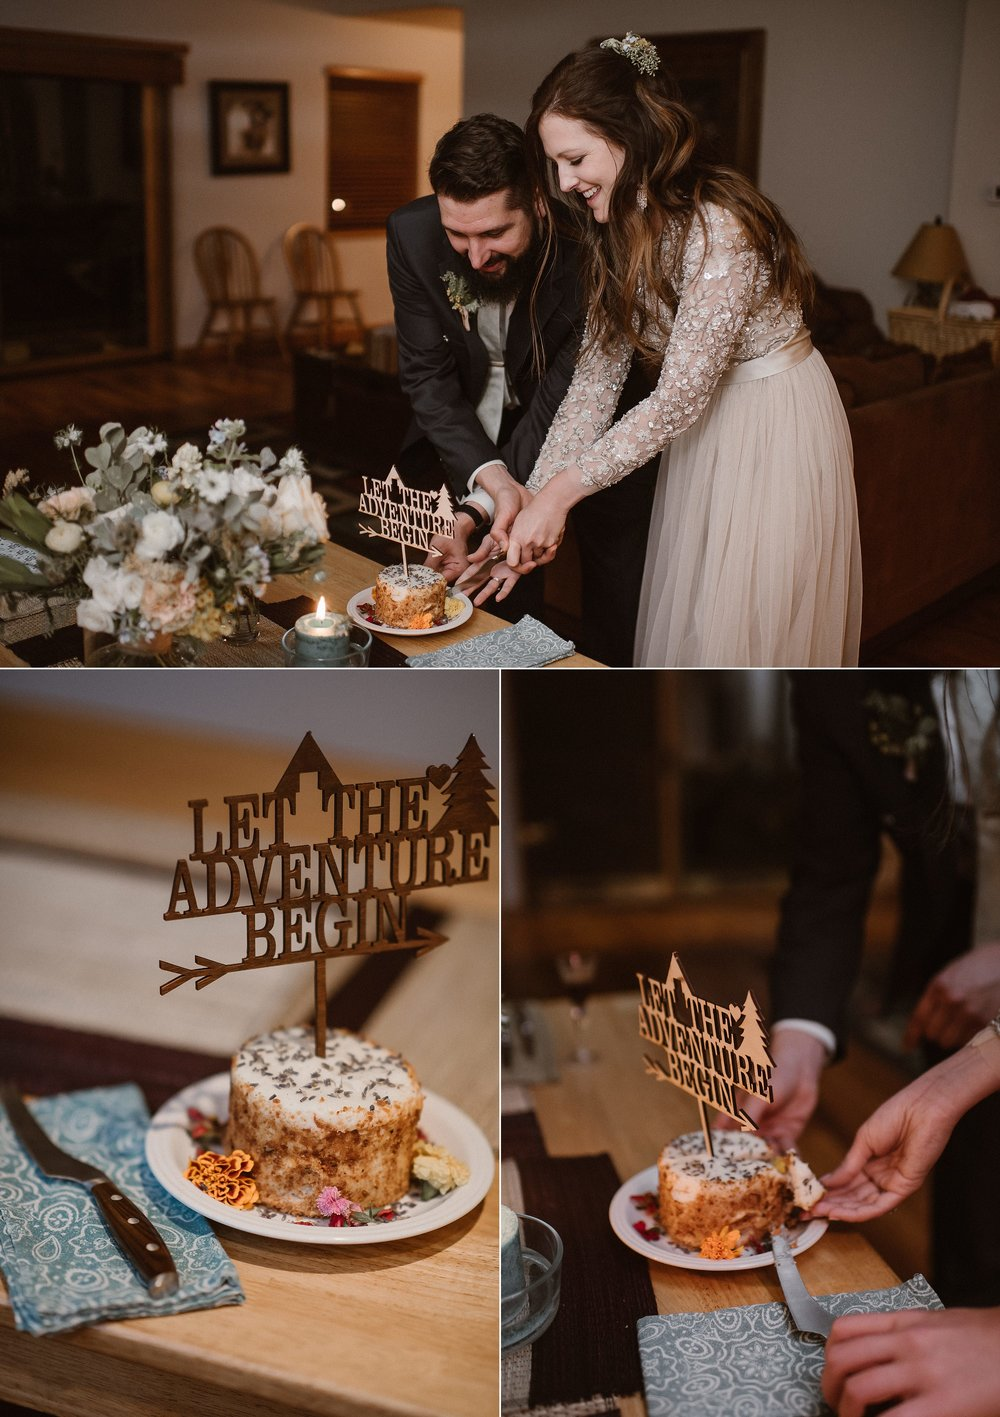 No wedding celebration, no matter how big or small, is really complete without a piece of cake. Jen and Dan's was topped with a custom wooden topper with their adventurous theme. Photos of this delicious private elopement dinner in Ouray, Colorado was captured by intimate wedding photographer Maddie Mae.